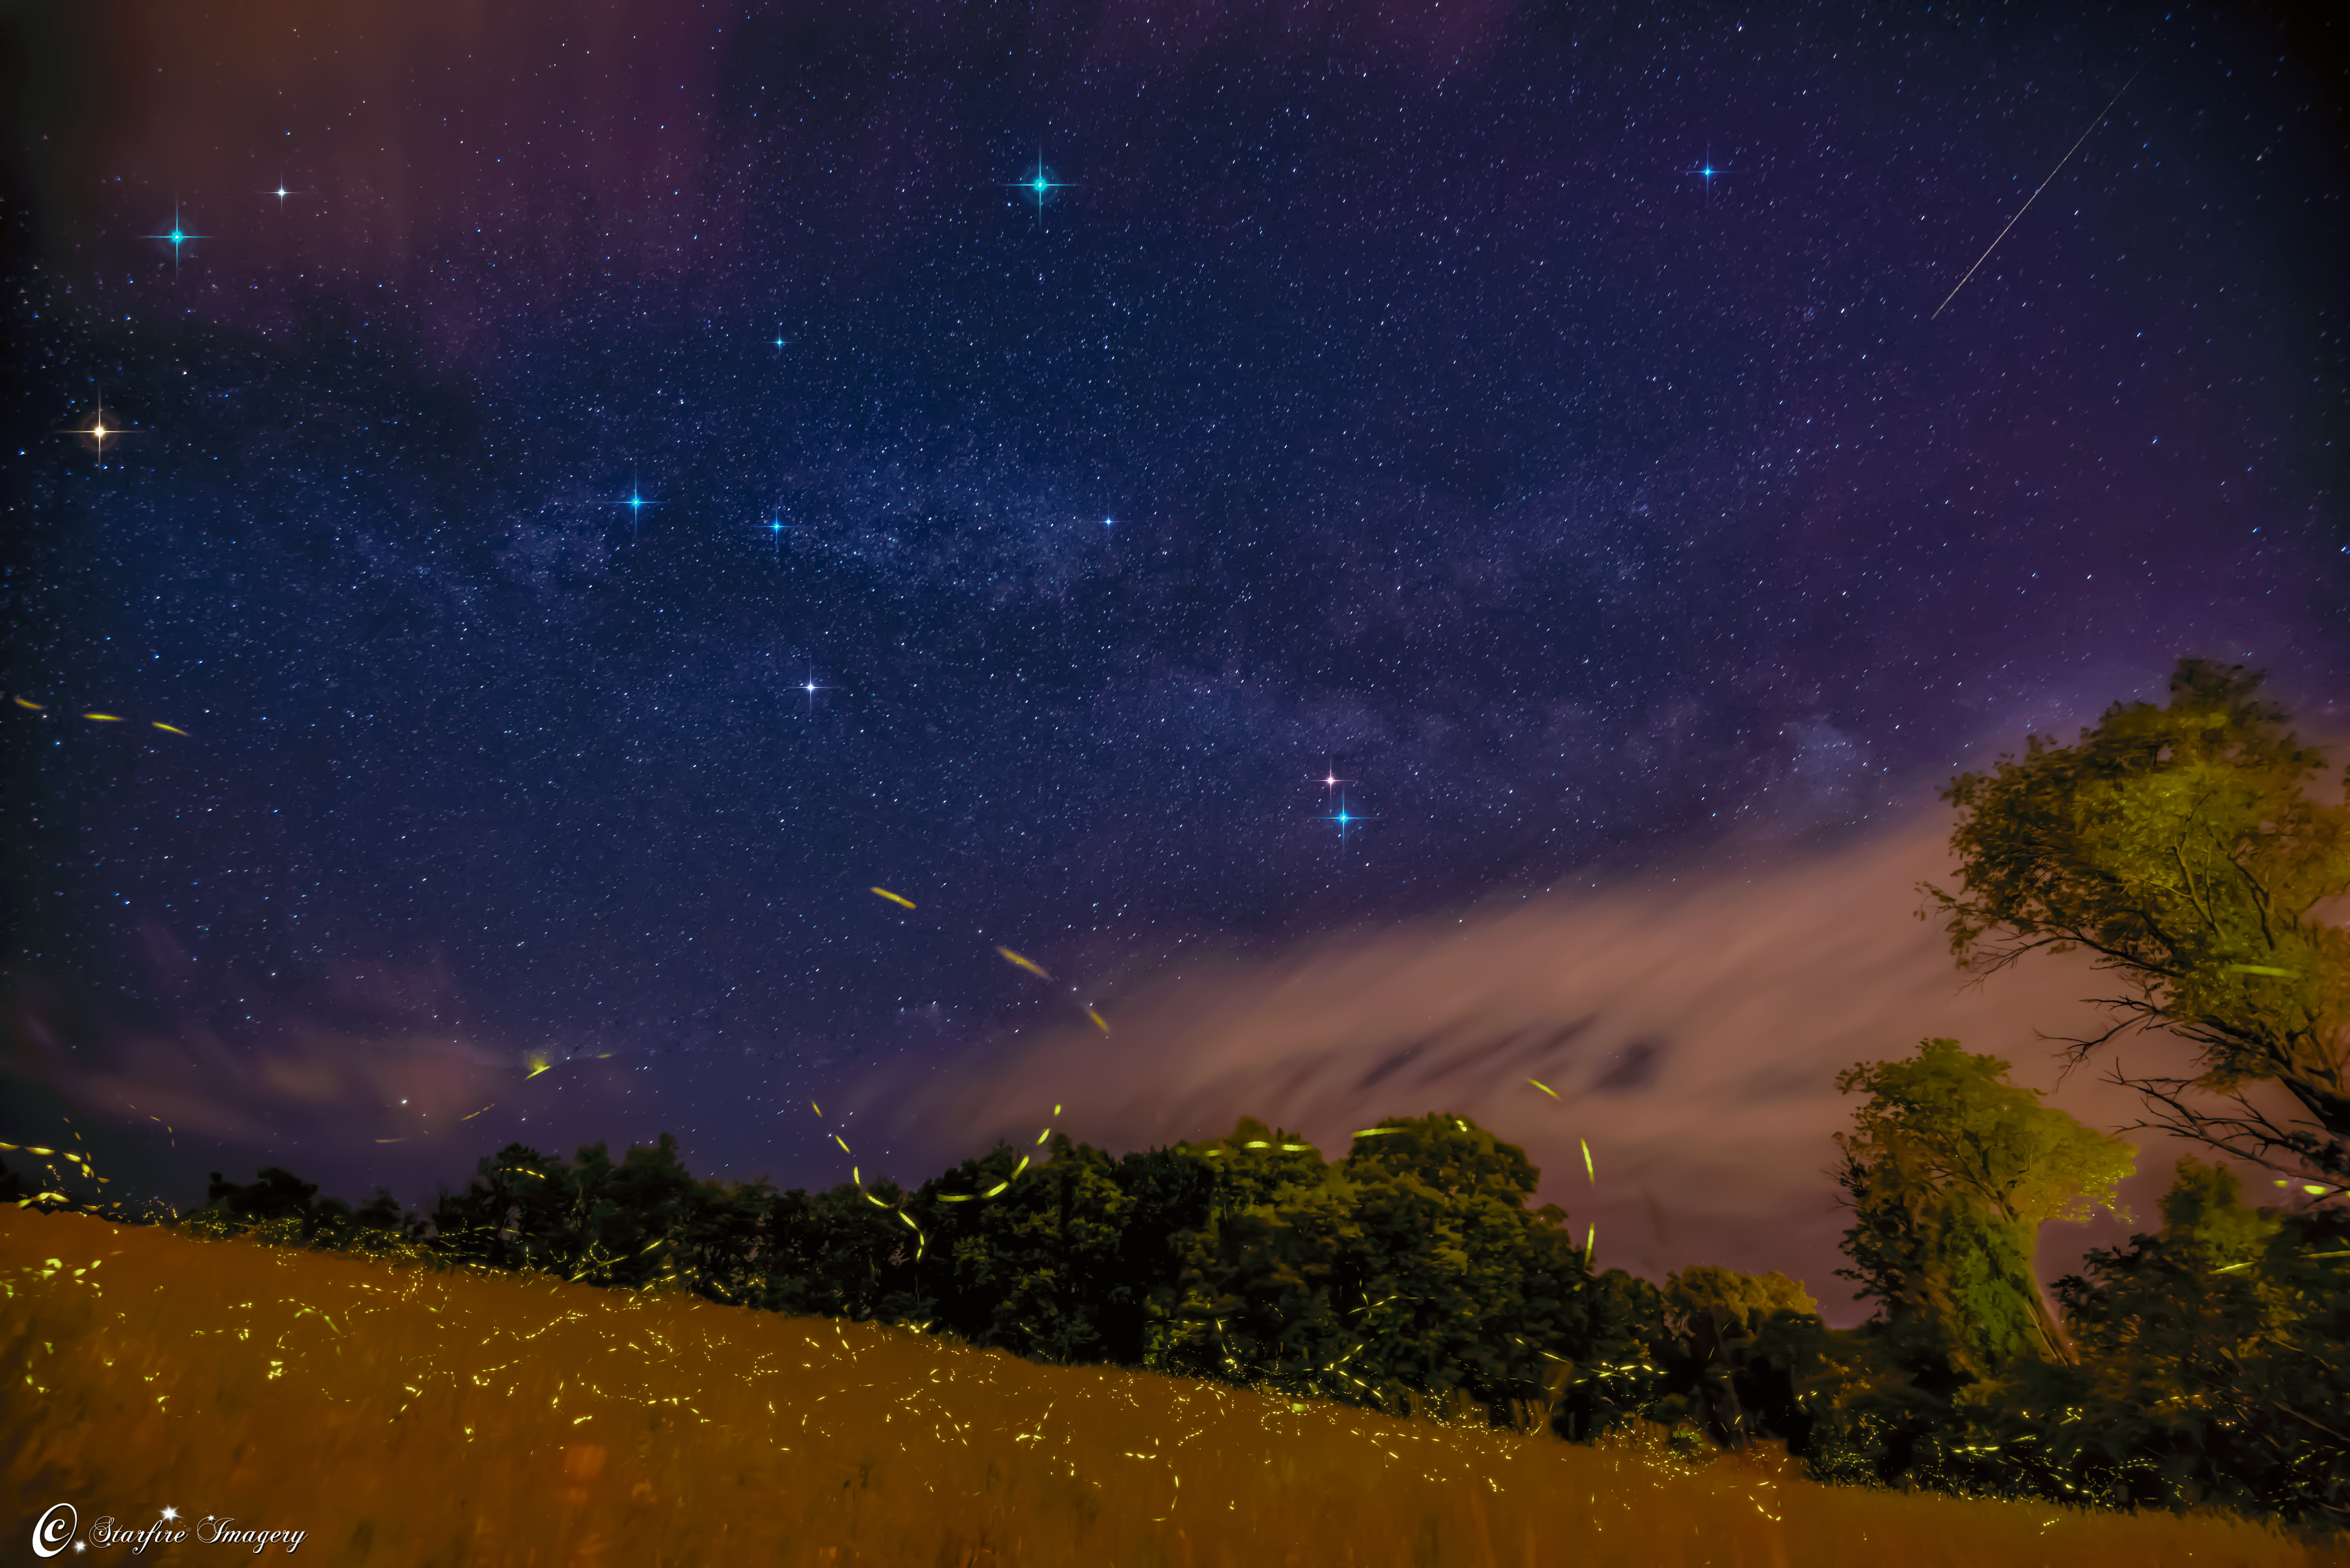 Firefly Trails Under Milky Way Captured by Astrophotographer (Photo)